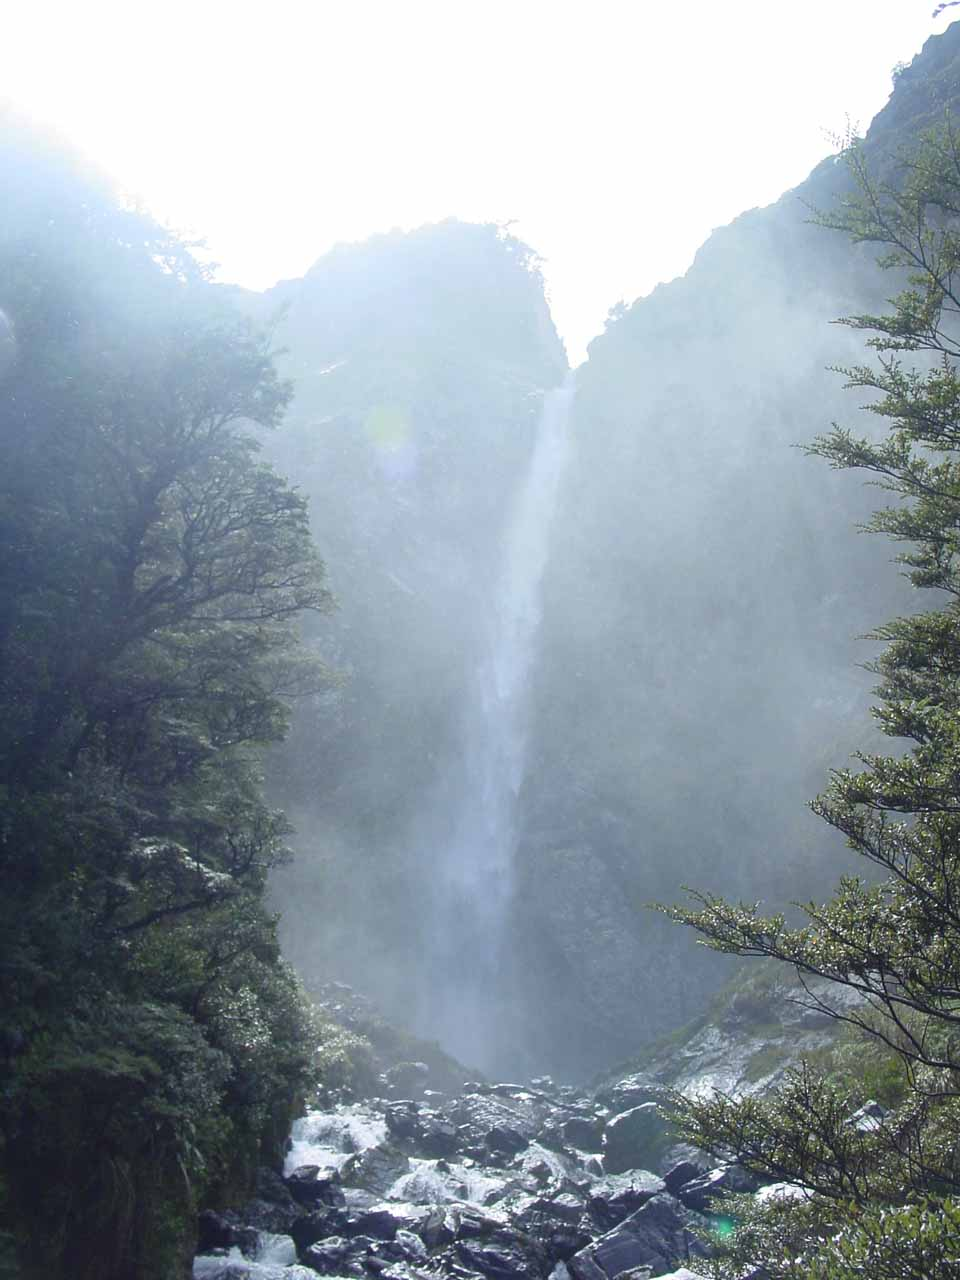 Devils Punchbowl Falls viewed from its base